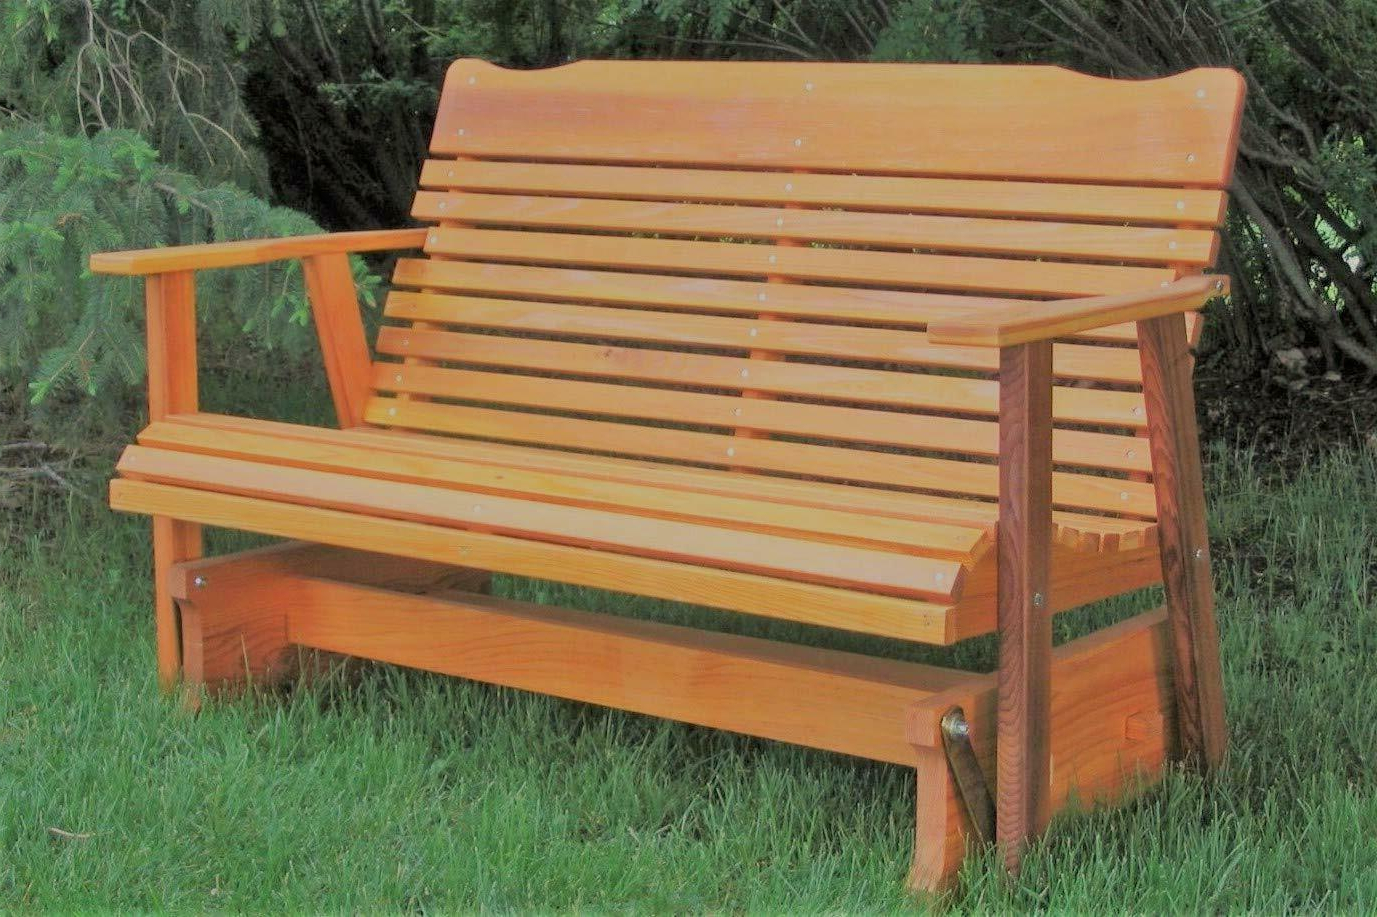 Wood Glider Bench Outdoor Patio Furniture Garden Deck Rocker Porch Amish  Crafted For Latest Outdoor Patio Swing Glider Benches (Gallery 13 of 30)